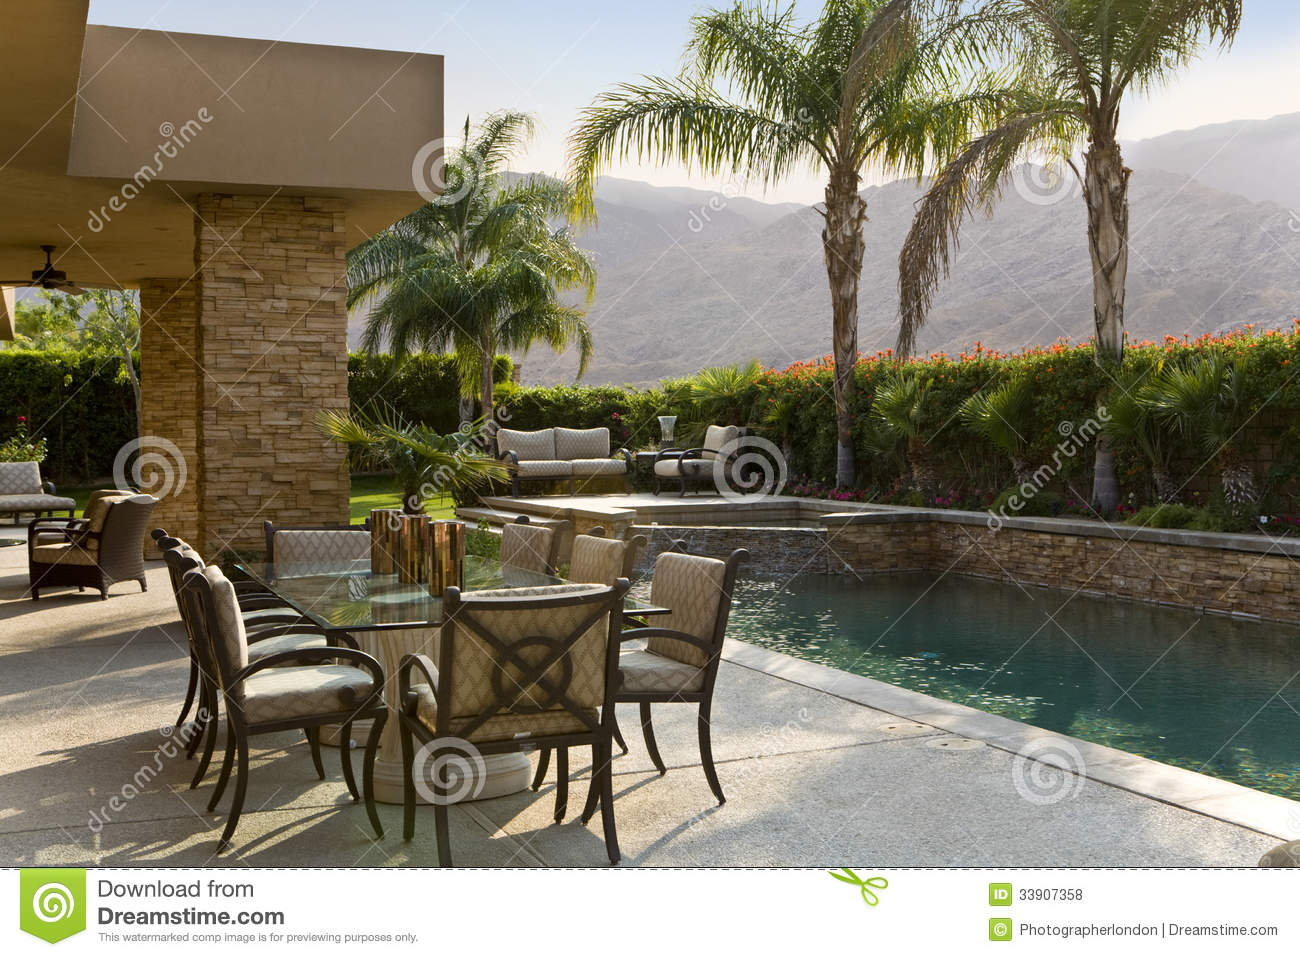 Outdoor table by swimming pool royalty free stock photos for Poolside table and chairs